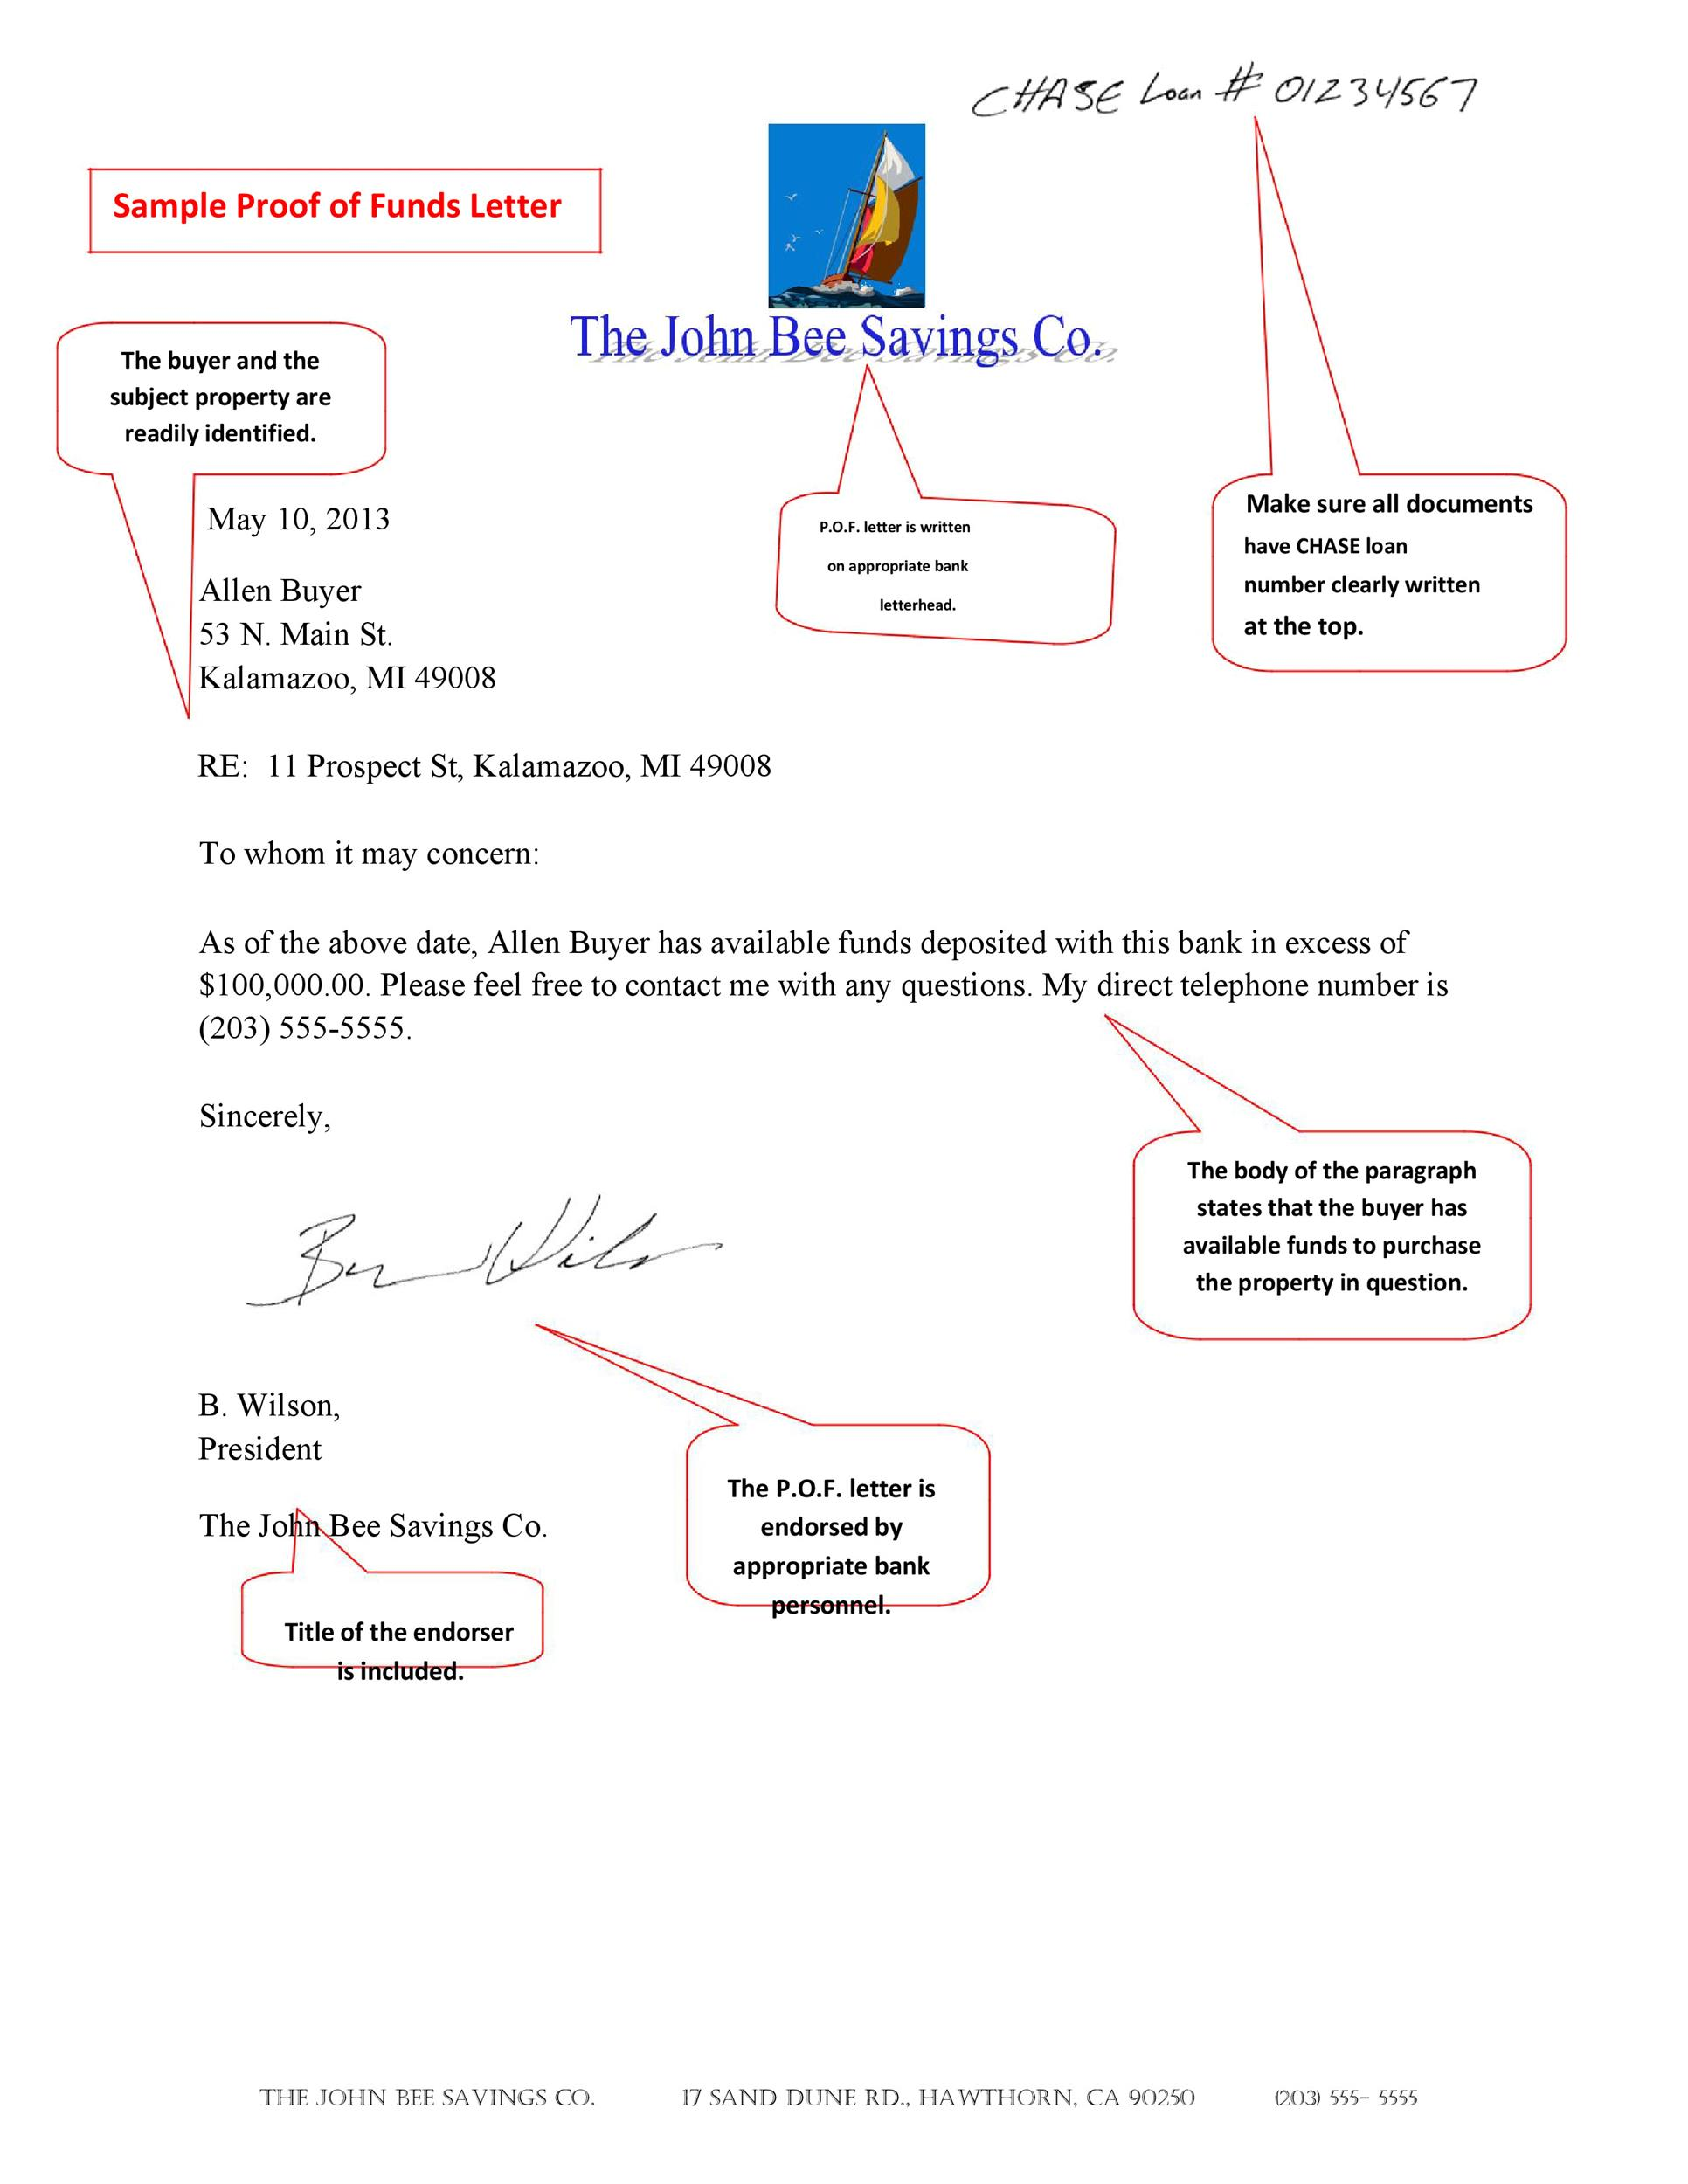 25 Best Proof of Funds Letter Templates ᐅ Template Lab